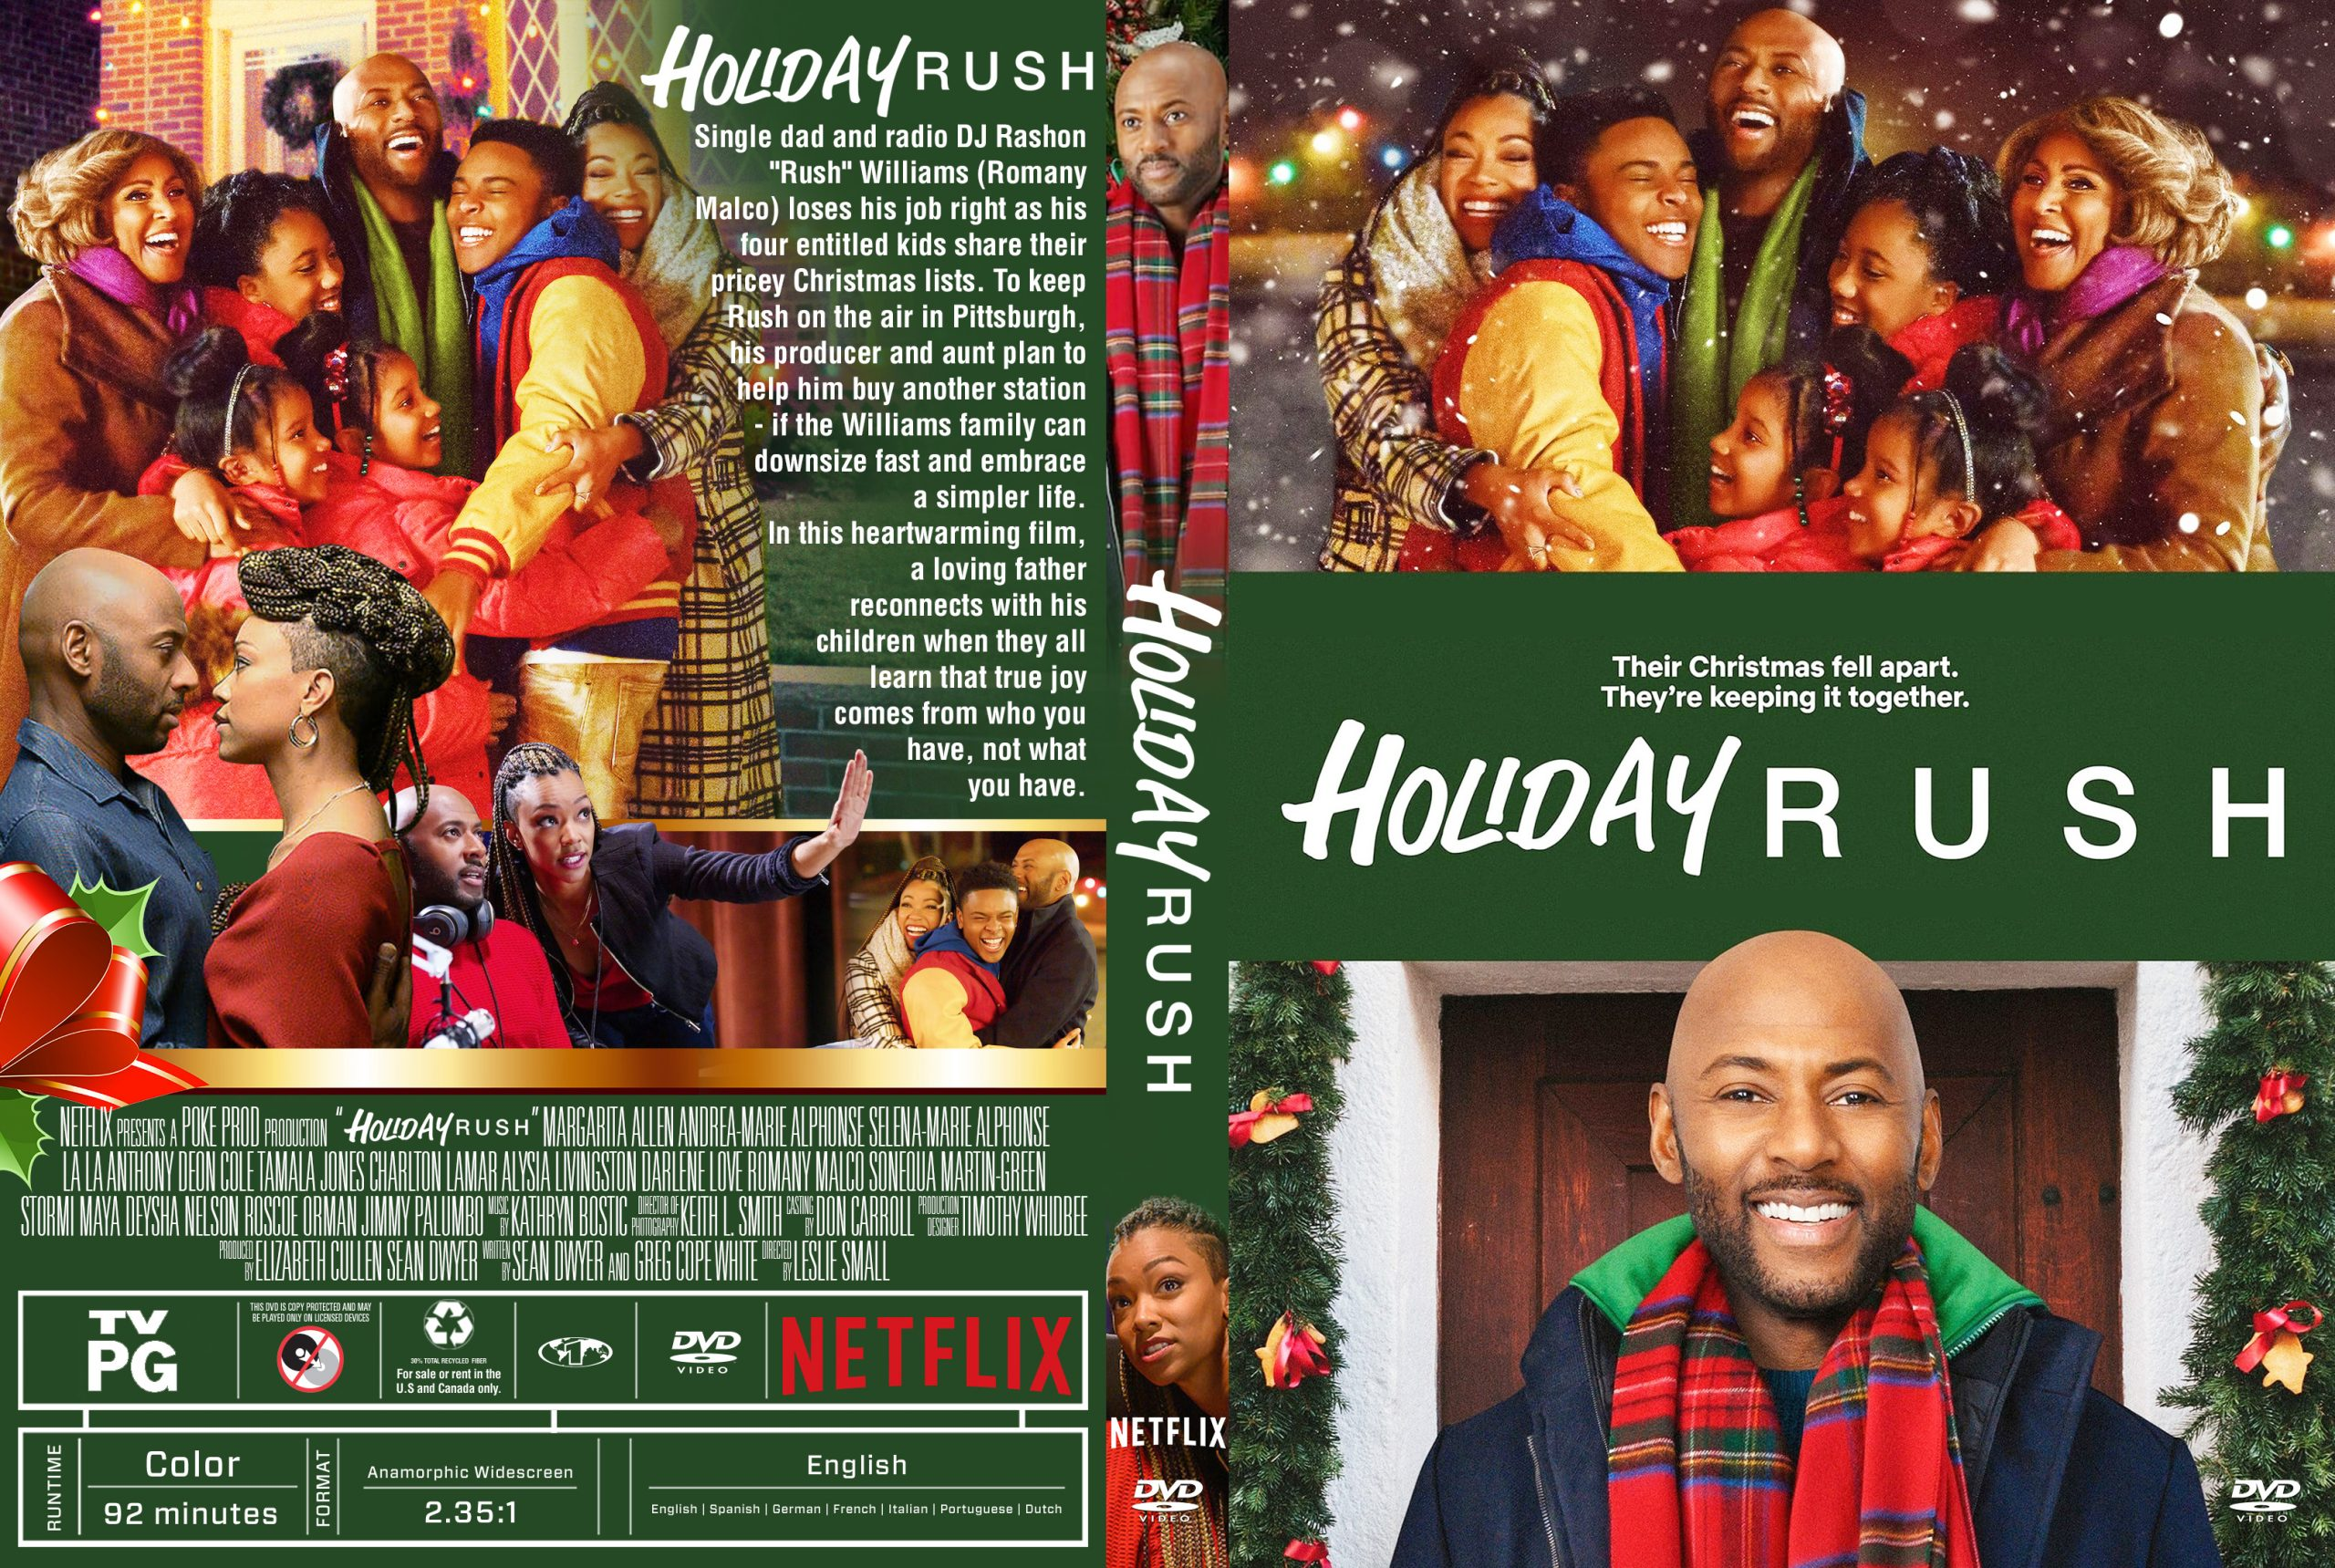 Holiday Rush (2019) Subtitle (English Srt) Download